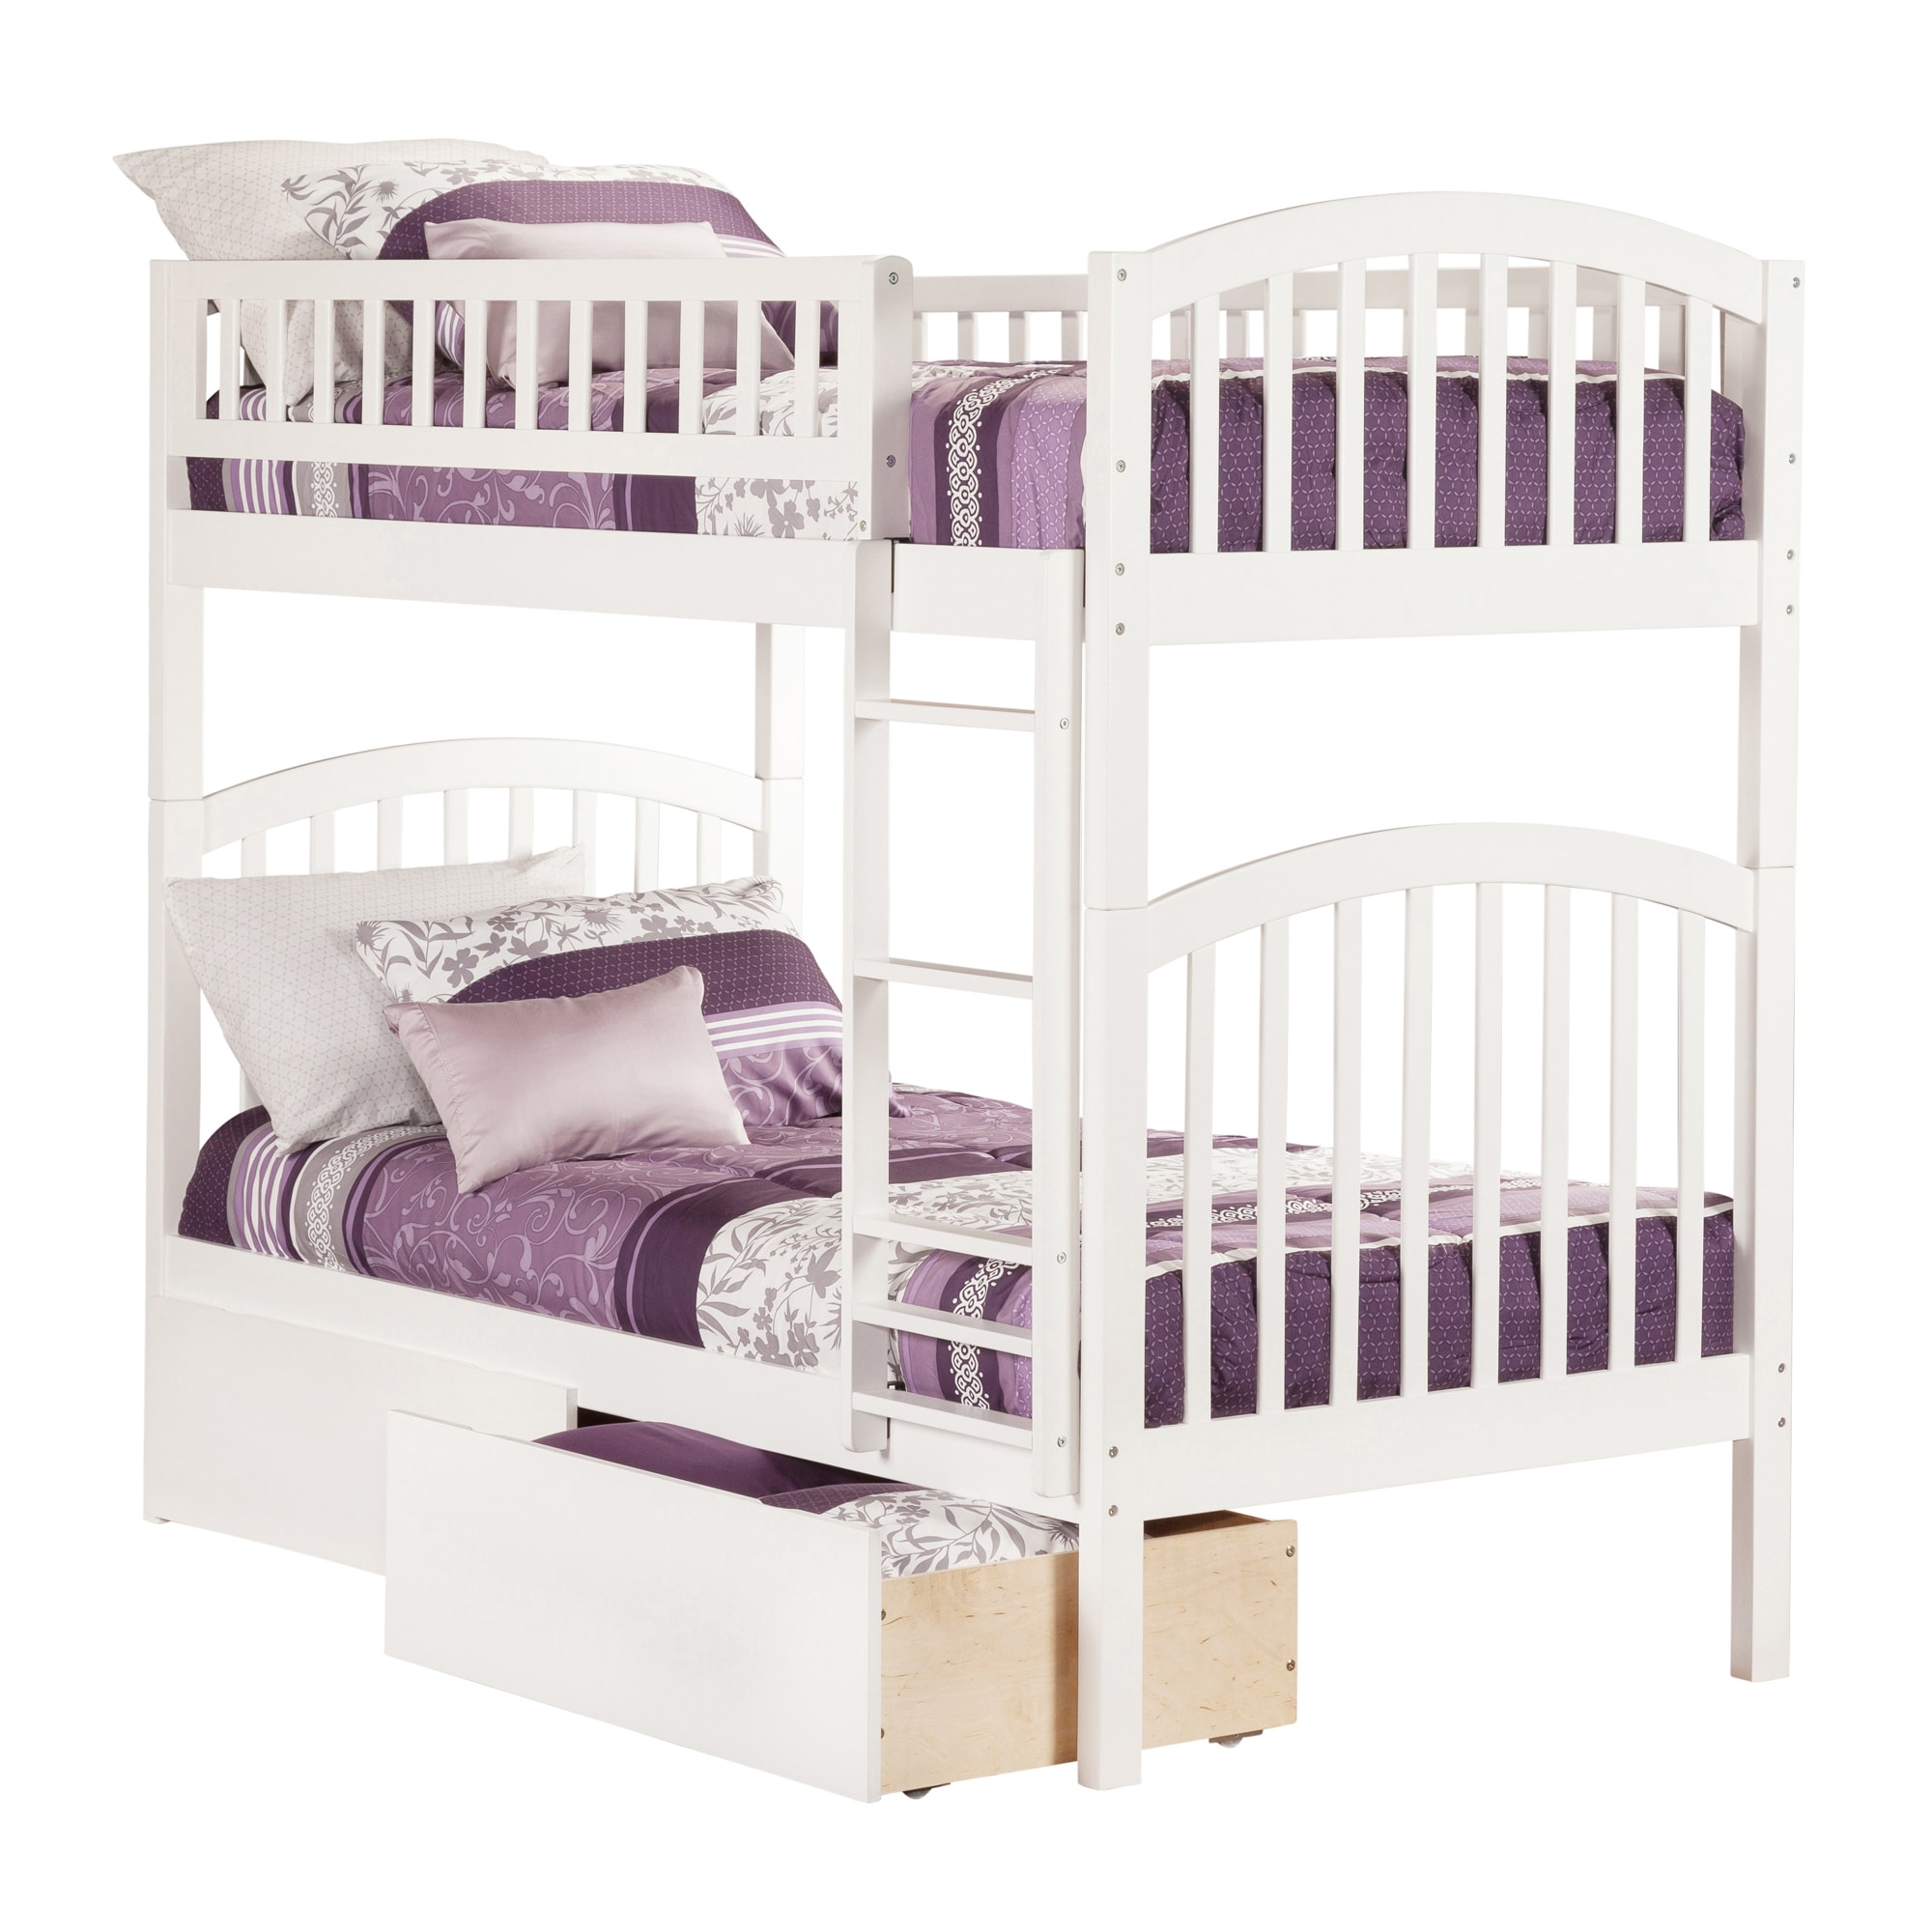 Atlantic Furniture Atlantic Richland White Rubberwood Twin-over-twin Bunk Bed With 2 Urban Drawers